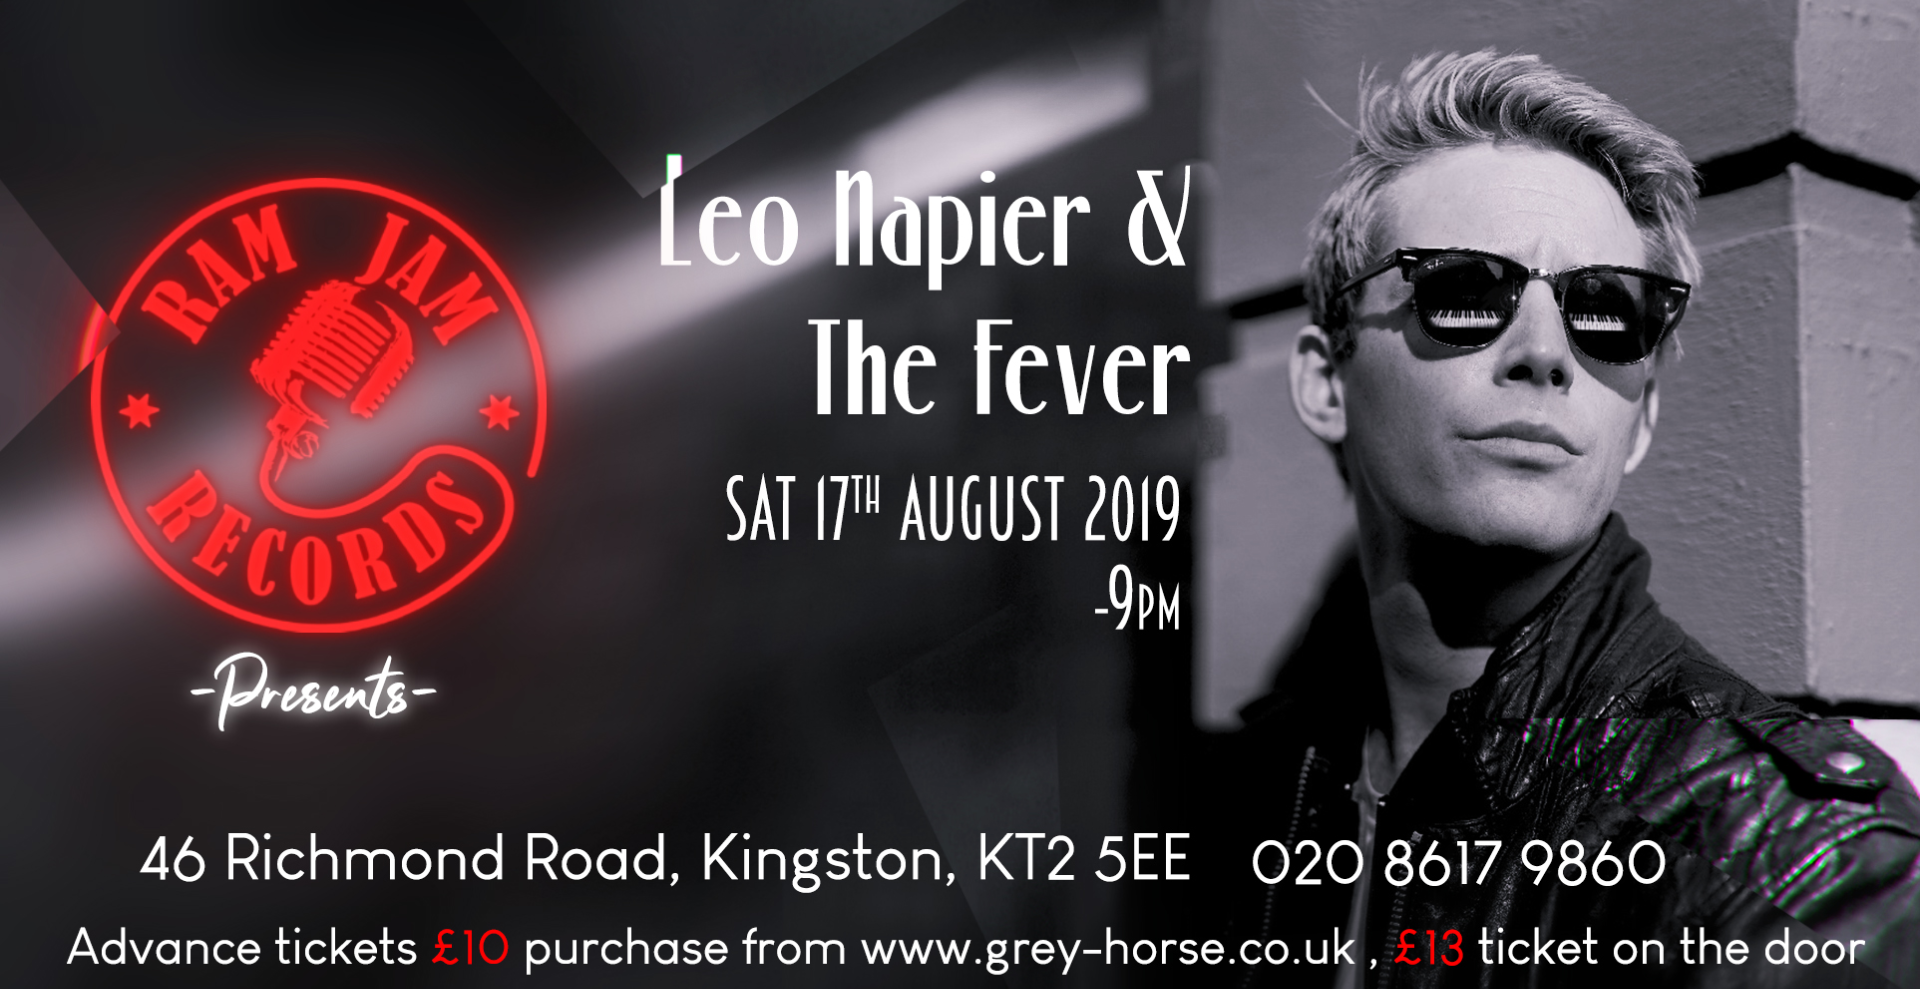 Leo Napier & The Fever